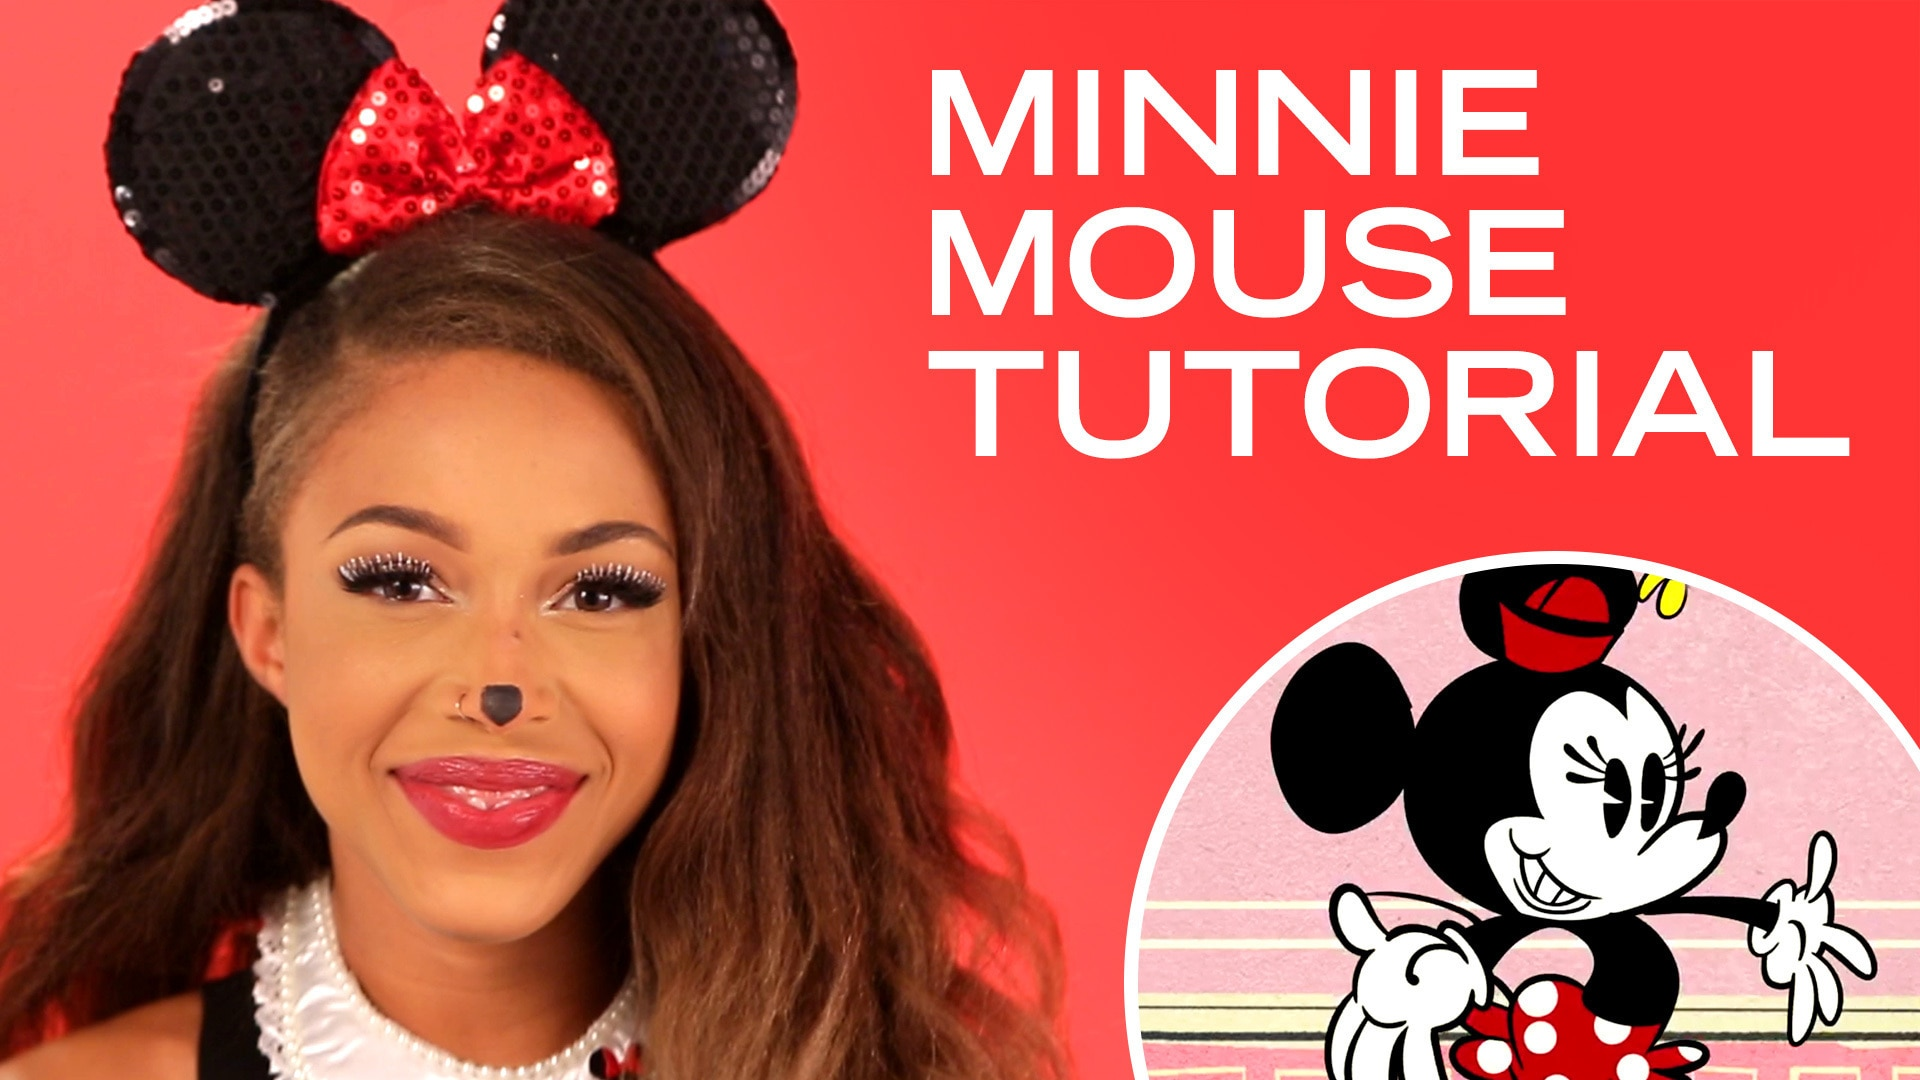 How To Get Minnie Mouse's Look